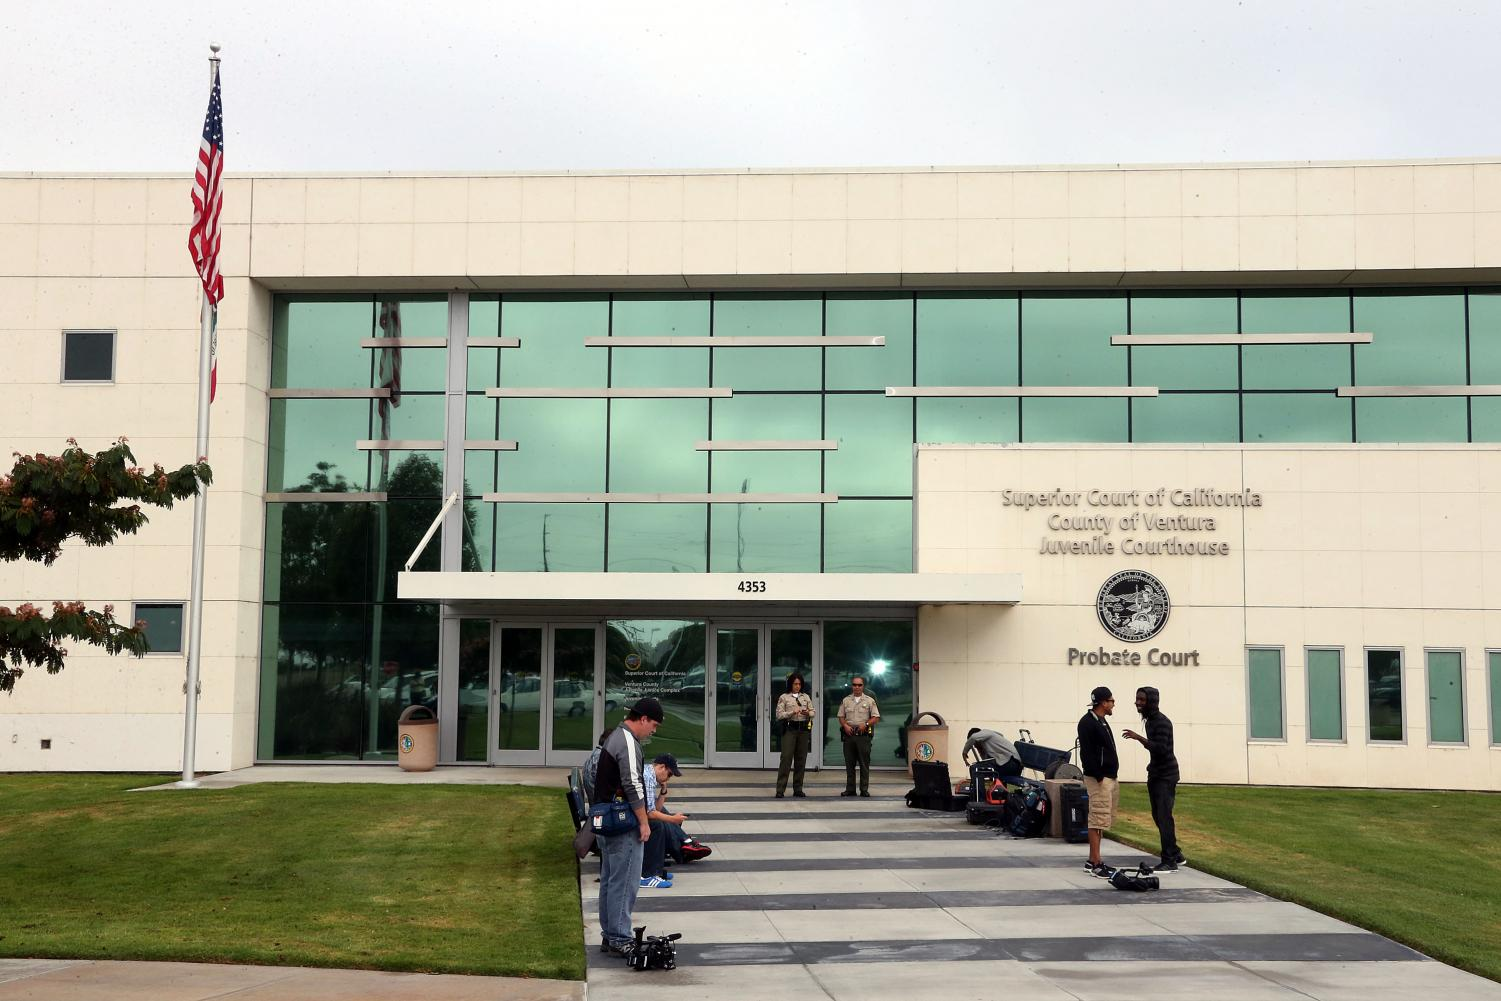 Exterior view of the Ventura County courthouse in Oxnard, California